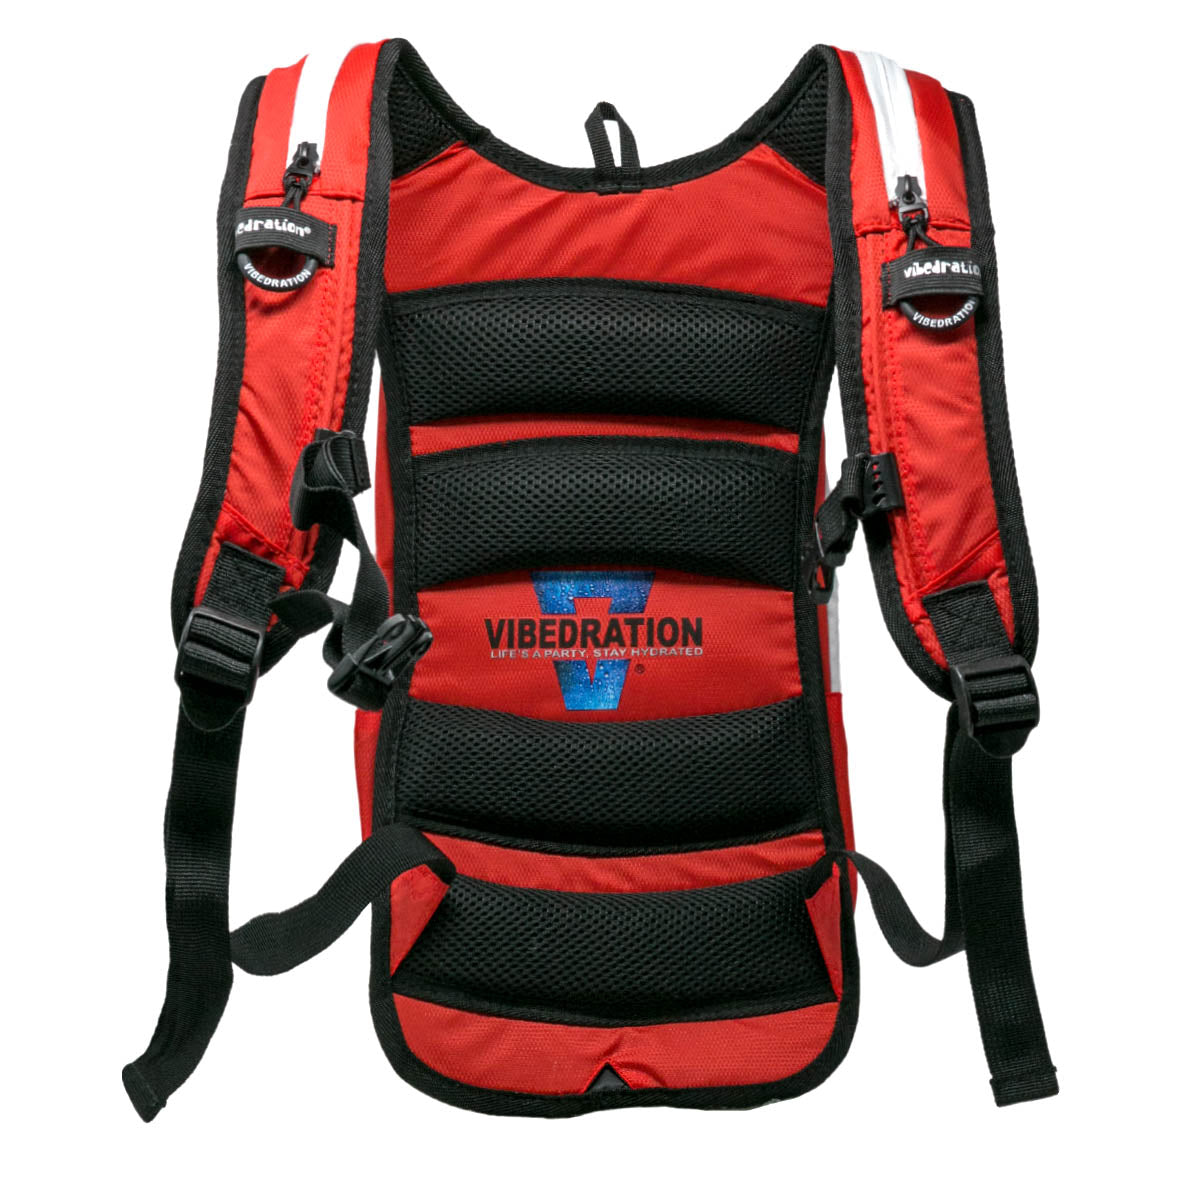 Padded backside of red and white nylon hydration pack